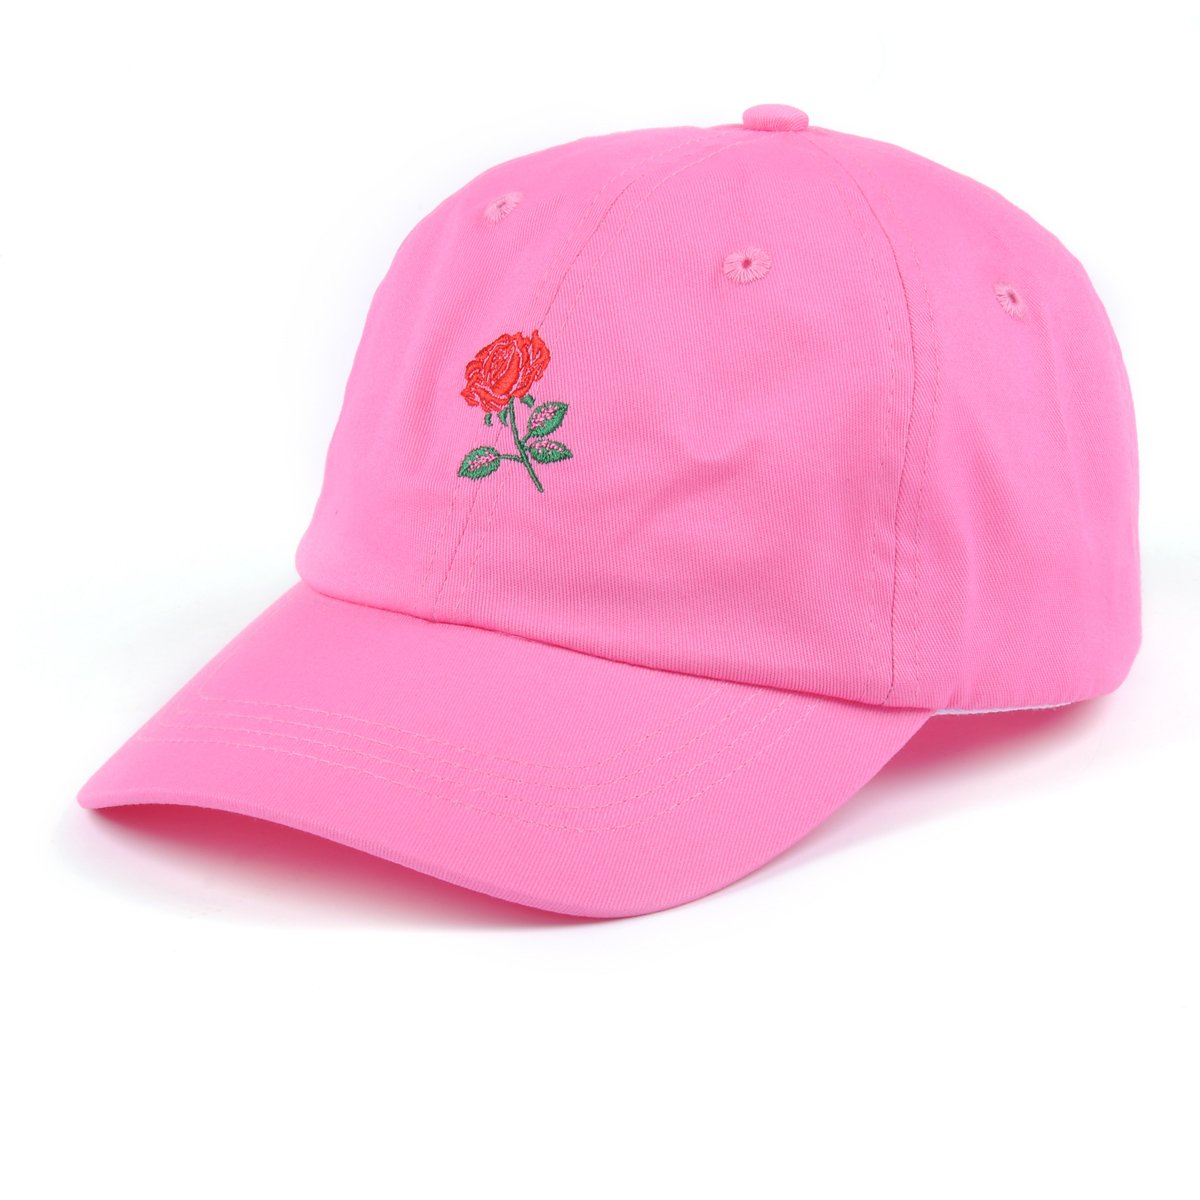 AUNG CROWN Rose Embroidered Dad Hat Women Cotton Adjustable Baseball Cap (Pink)